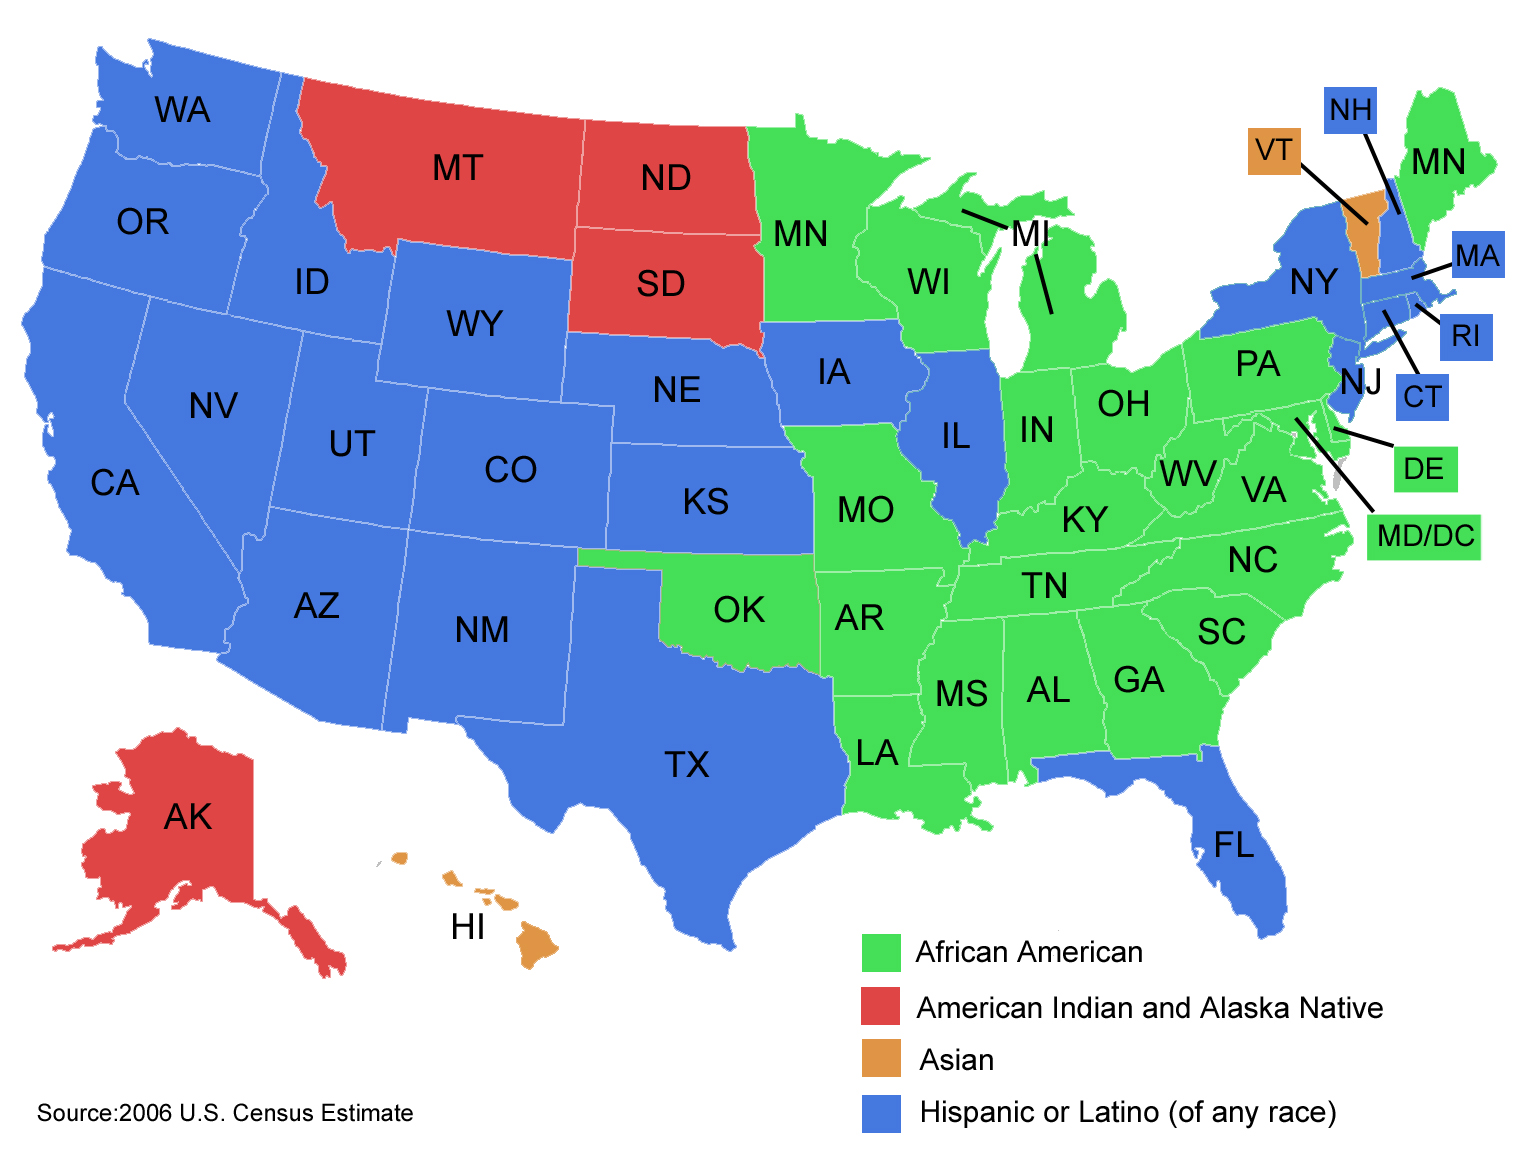 Filelargest Minority Groups In The Us By Statejpg Wikimedia Commons - Map-of-minorities-in-us